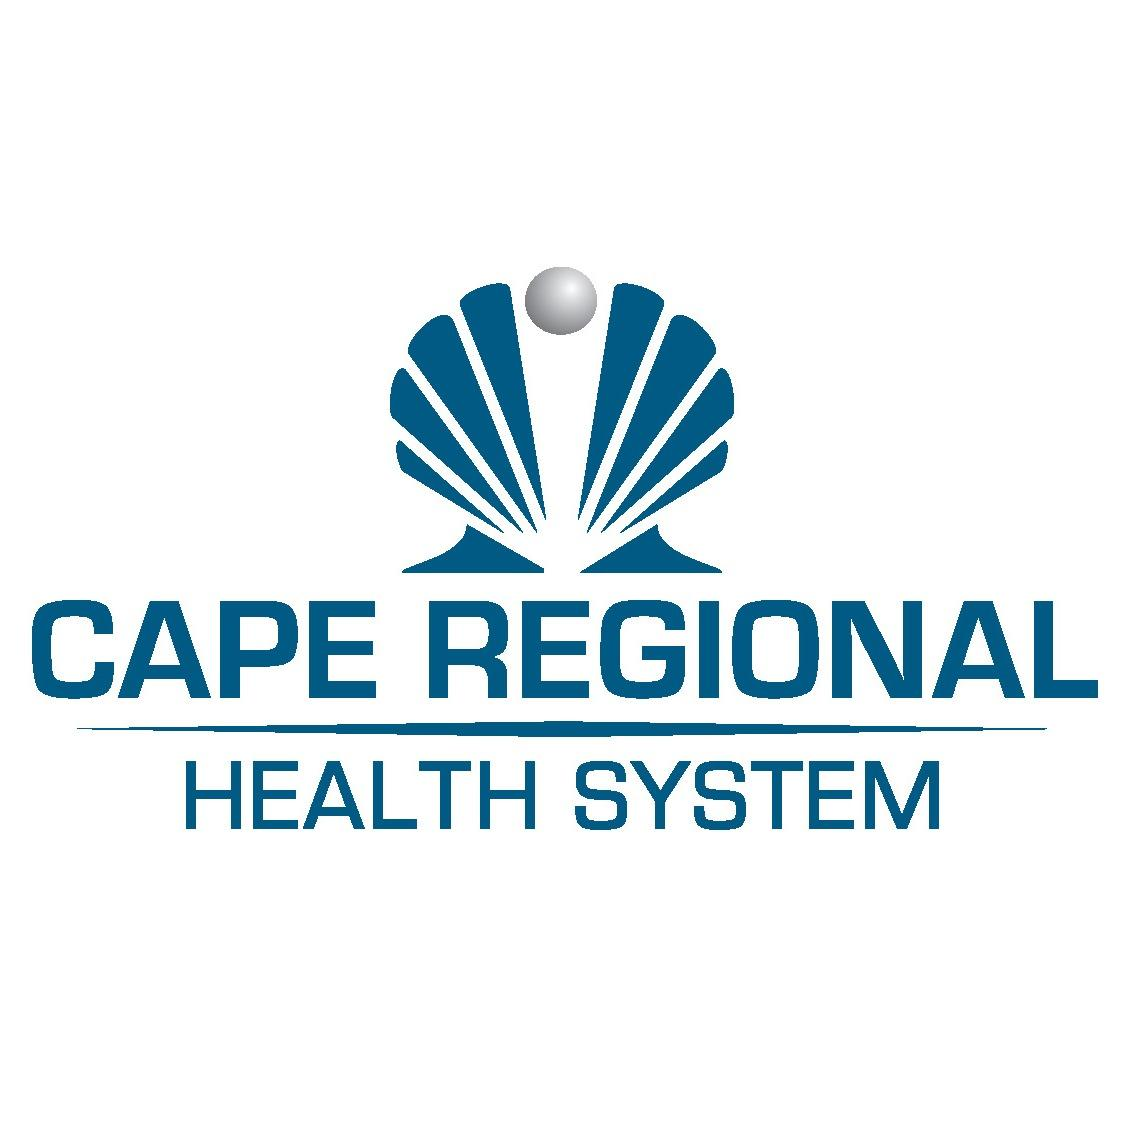 Cape Regional Heath System